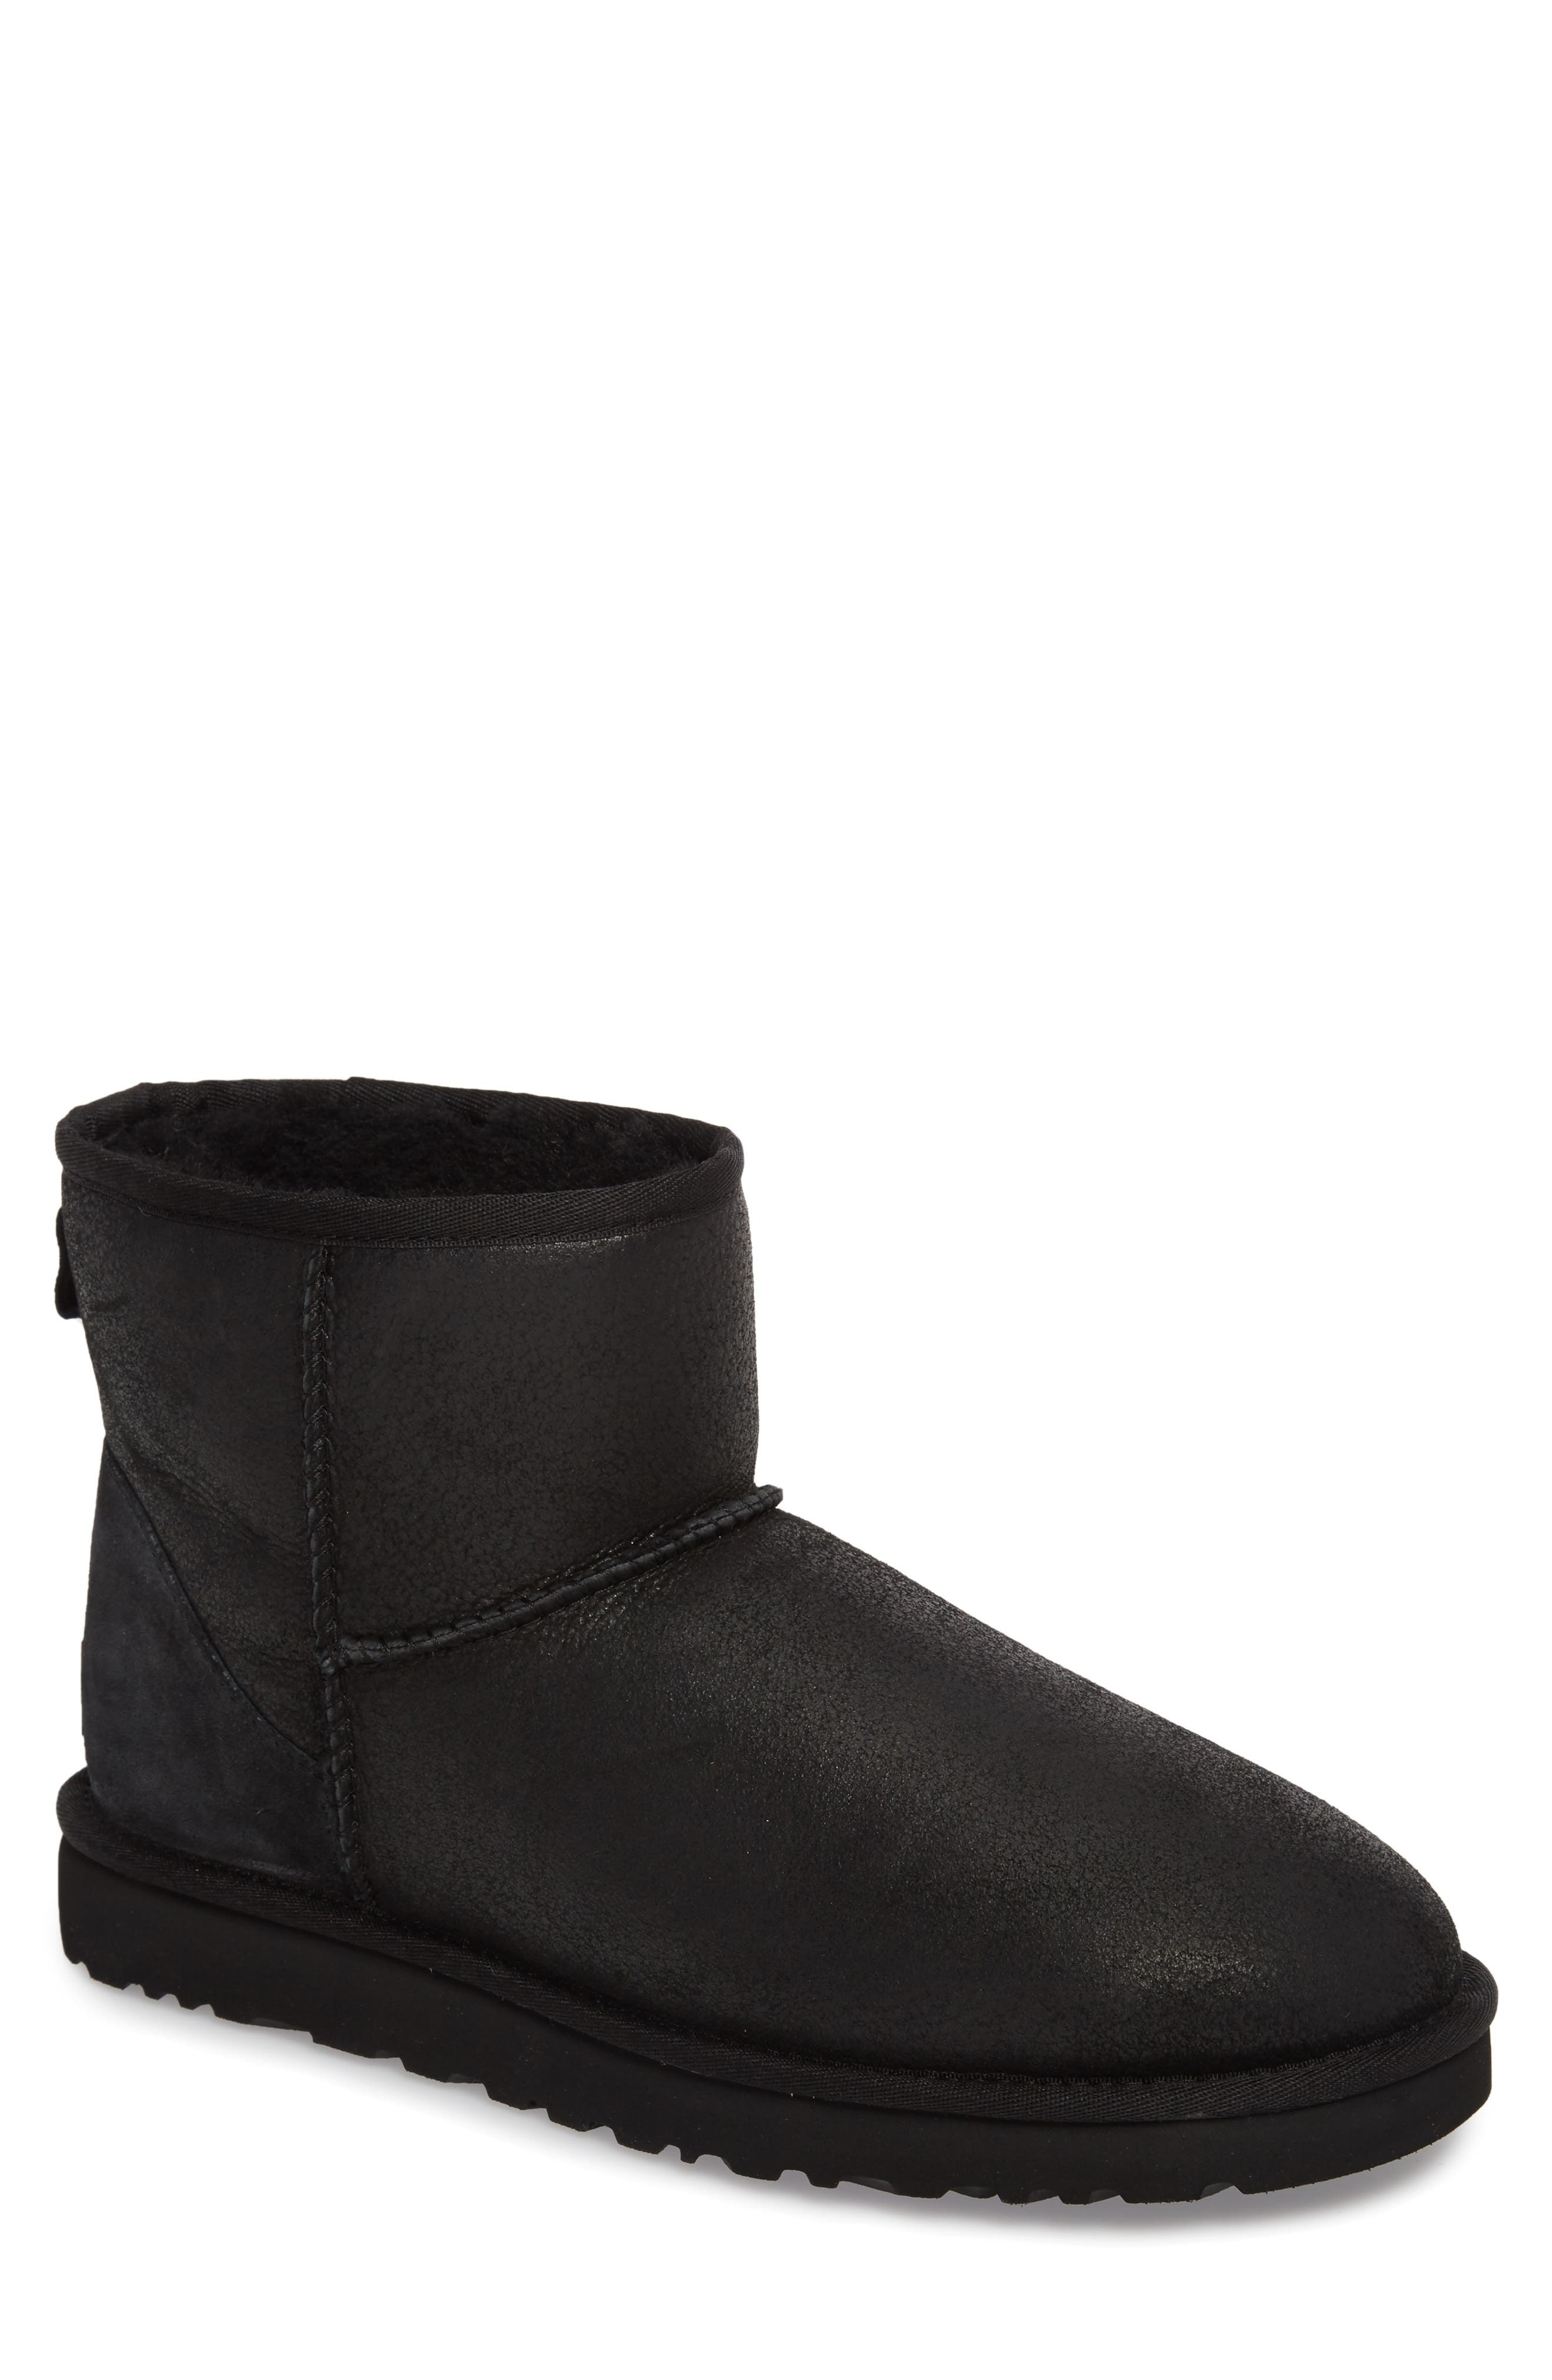 Classic Mini Bomber Boot with Genuine Shearling or UGGpure<sup>™</sup> Lining,                             Main thumbnail 1, color,                             BOMBER JACKET BLACK